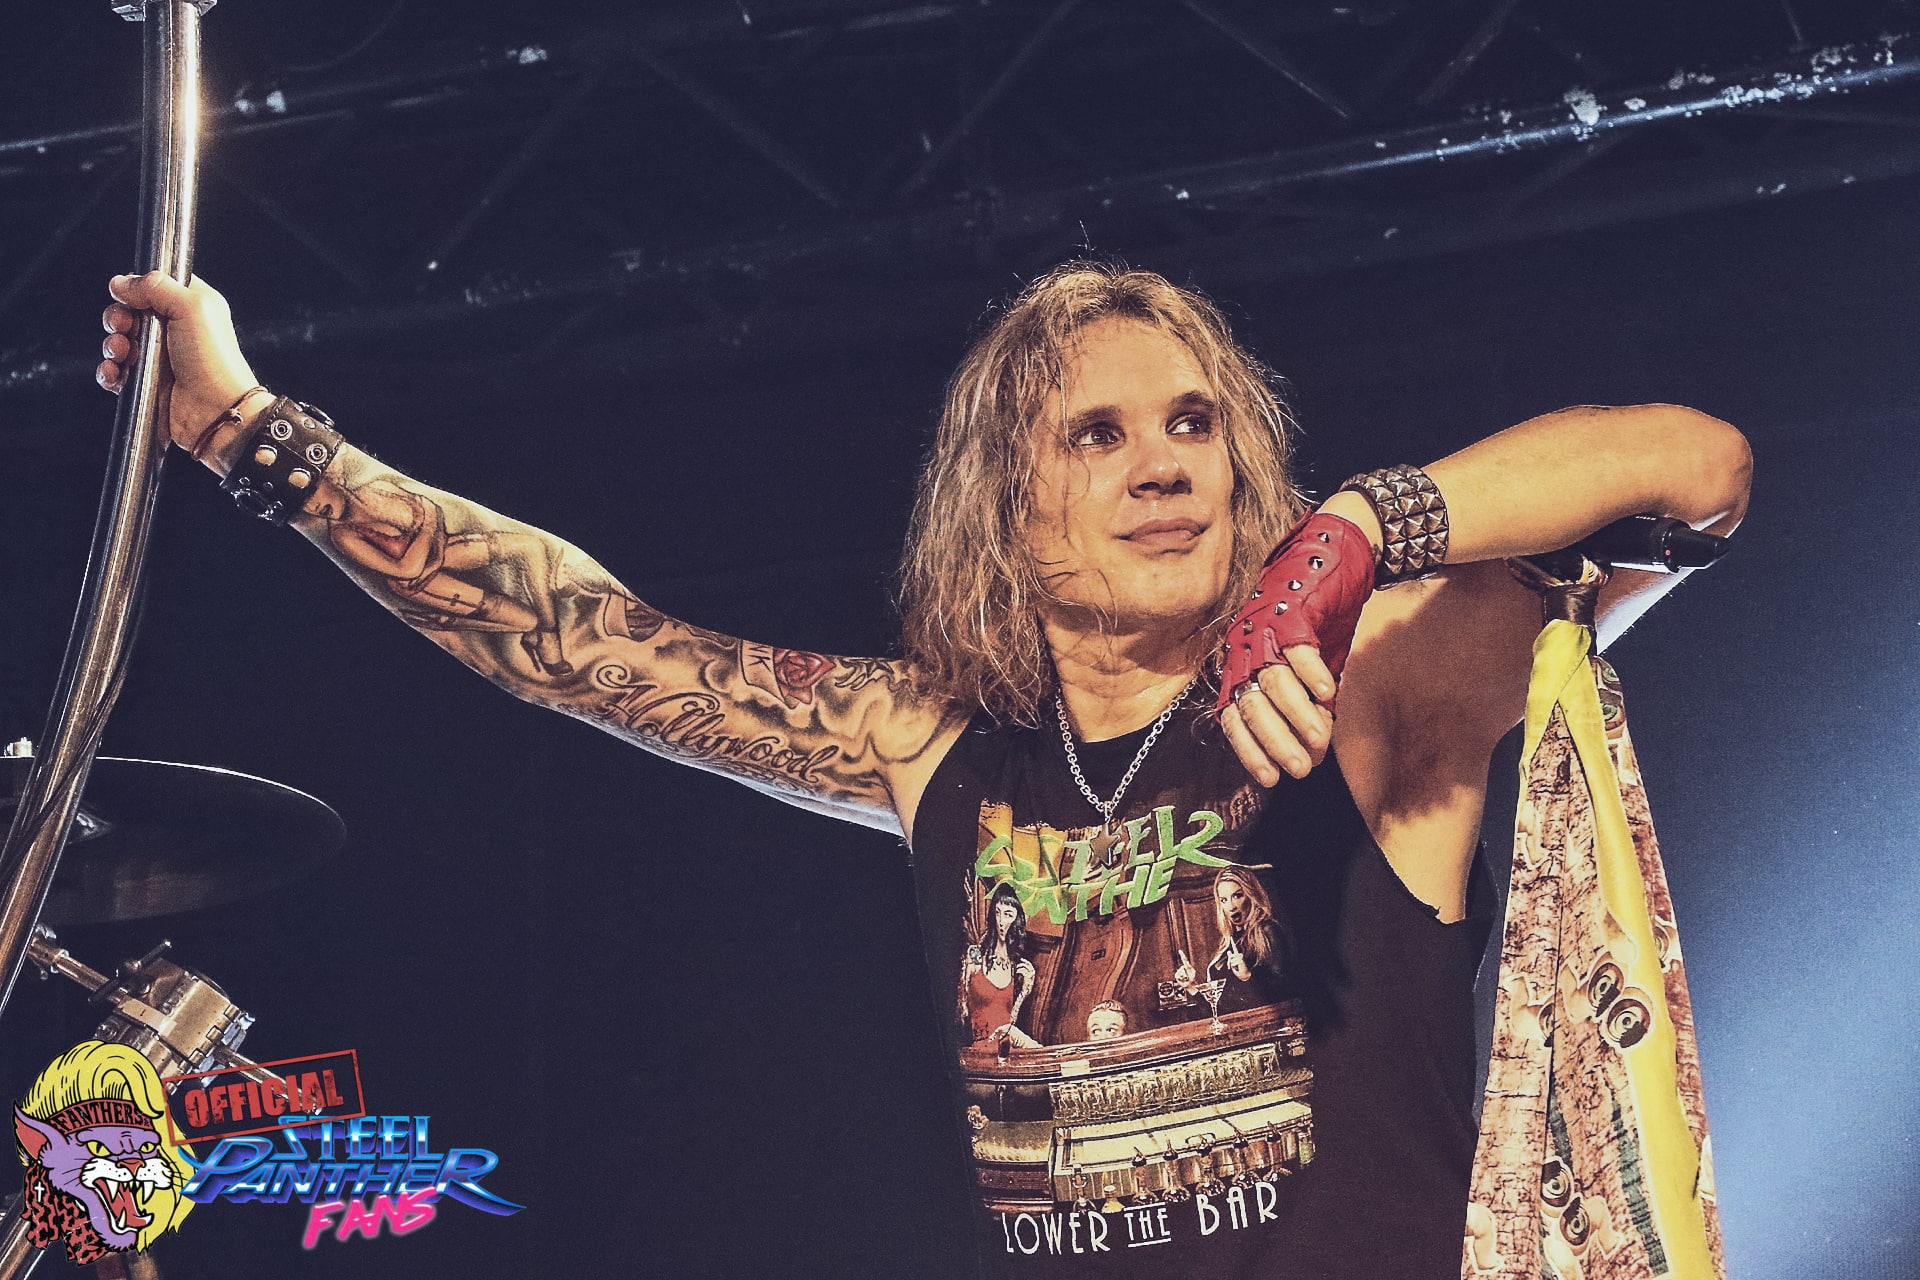 Steel Panther am 07.02.2018 im Den Atelier in Luxemburg